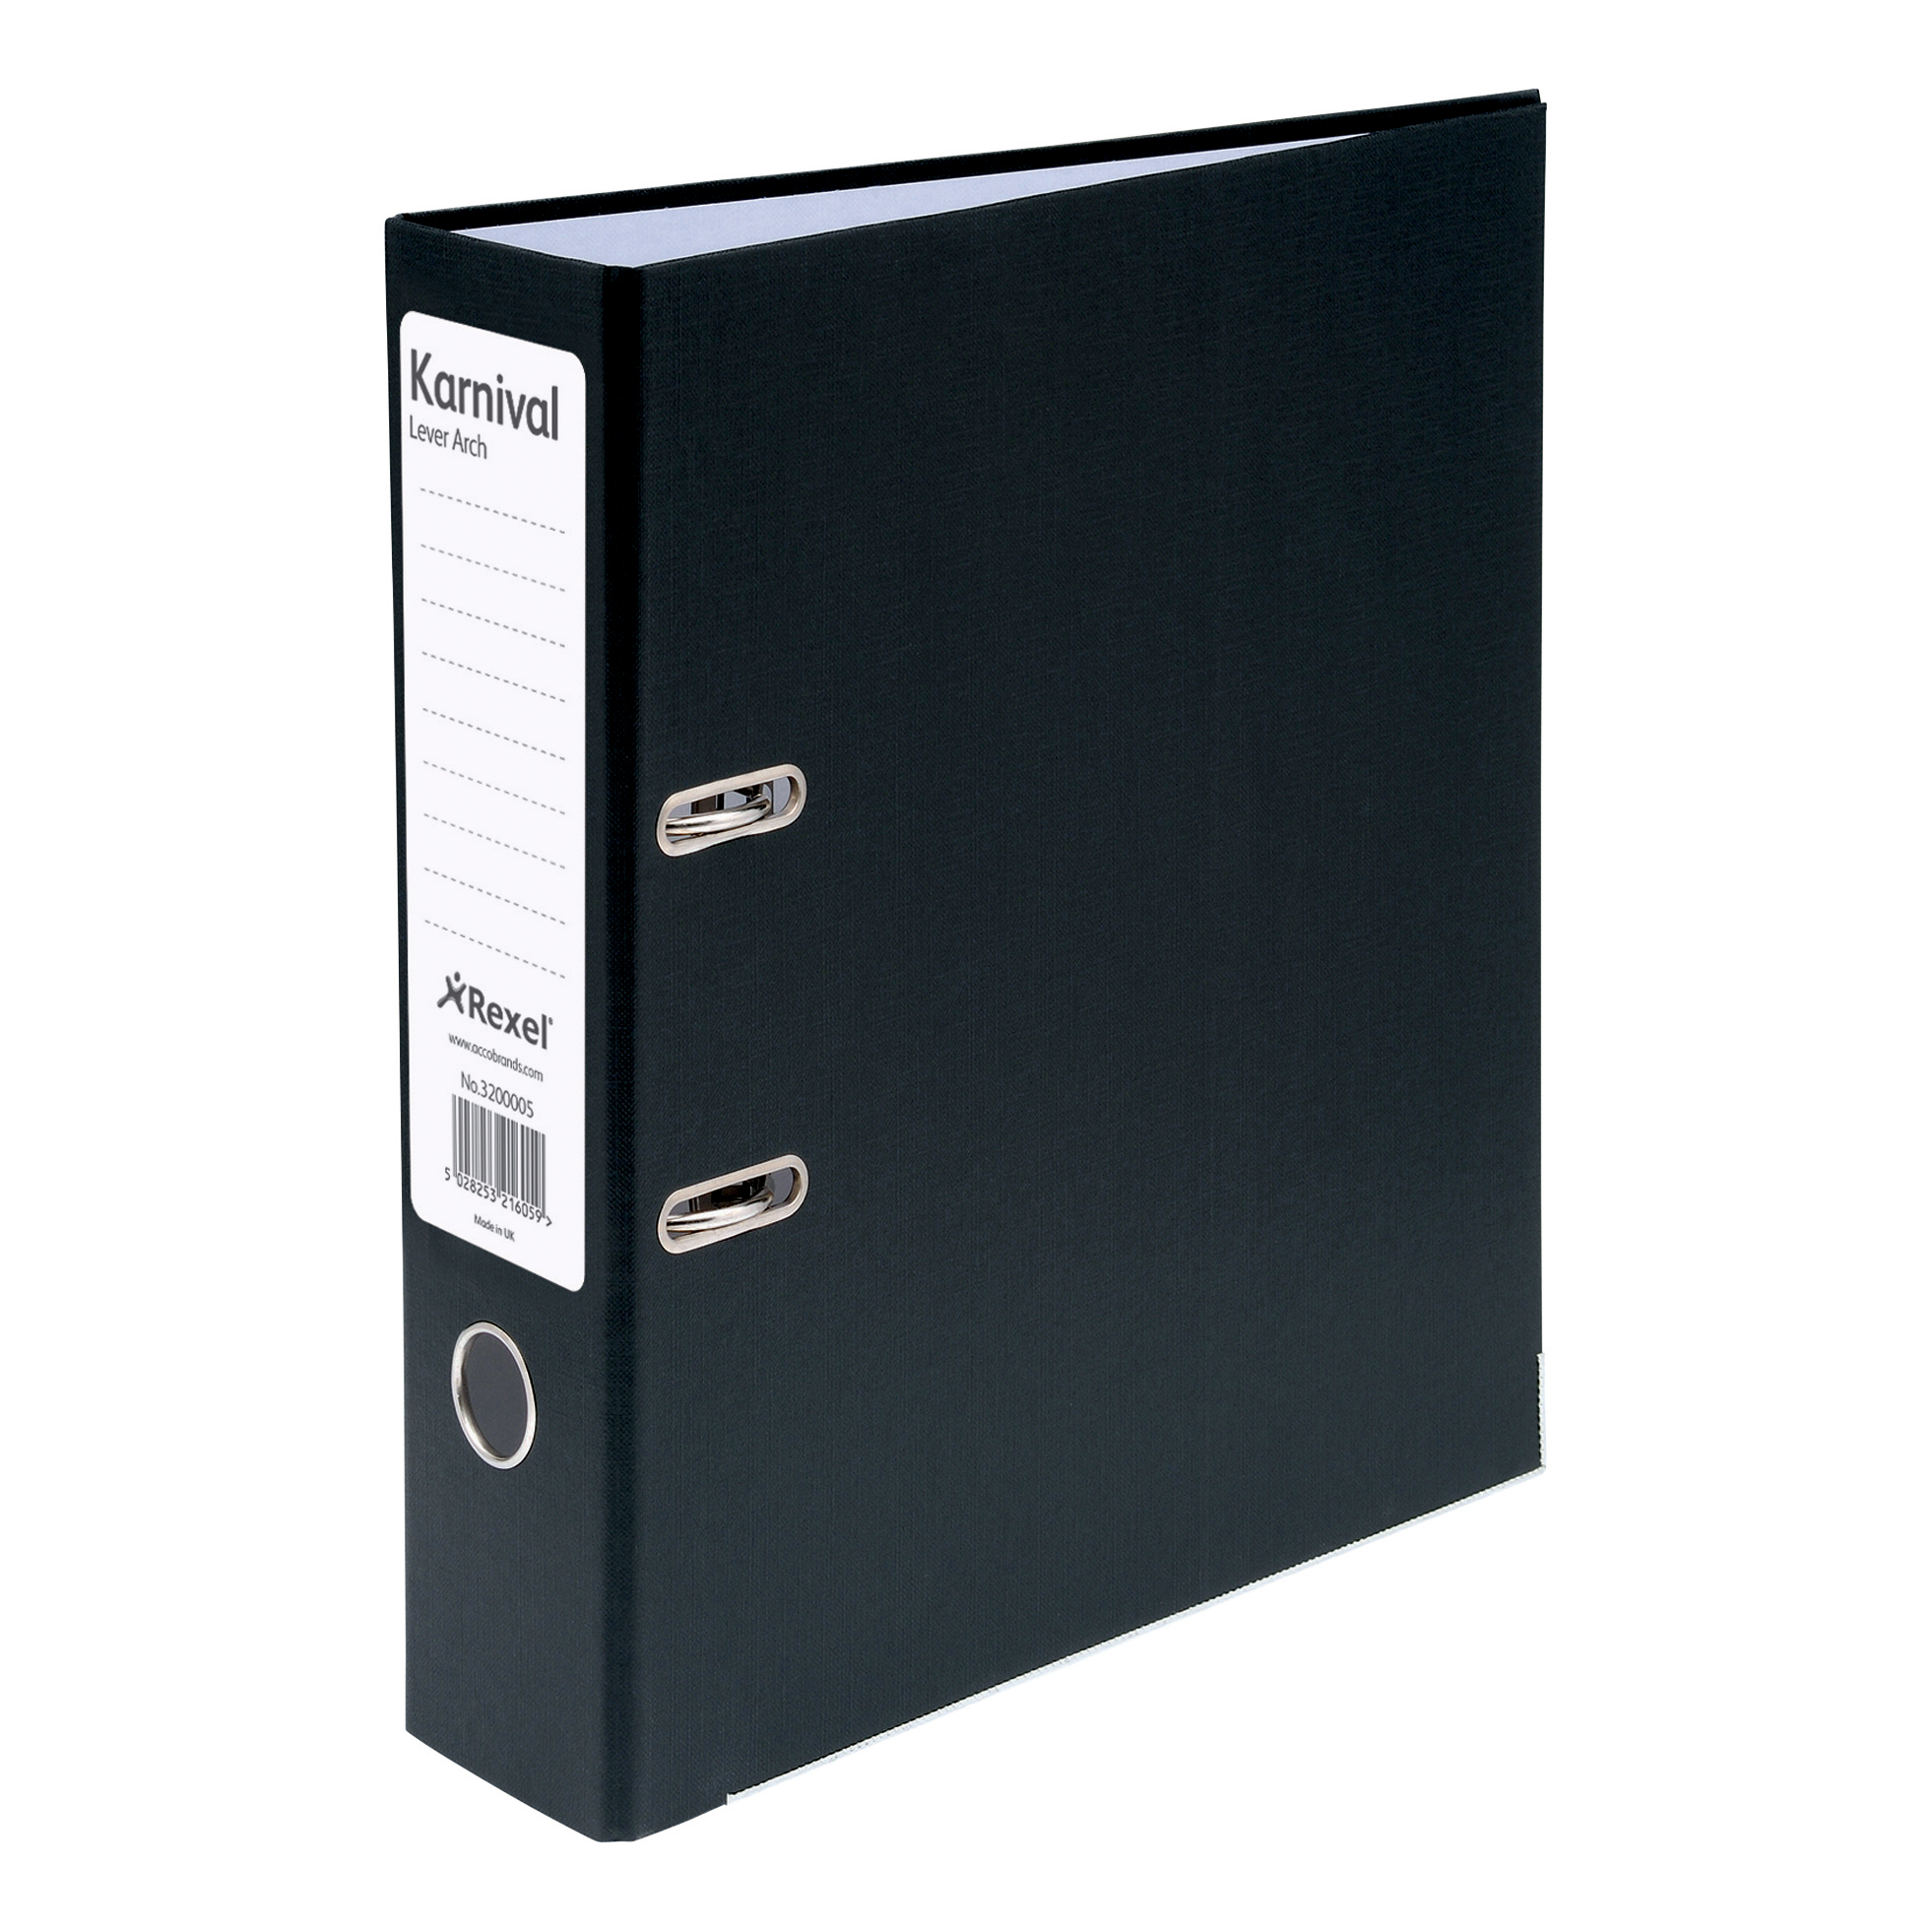 Rexel Karnival Lever Arch File Paper over Board Slotted 70mm A4 Black Ref 3200005 [Pack 10]